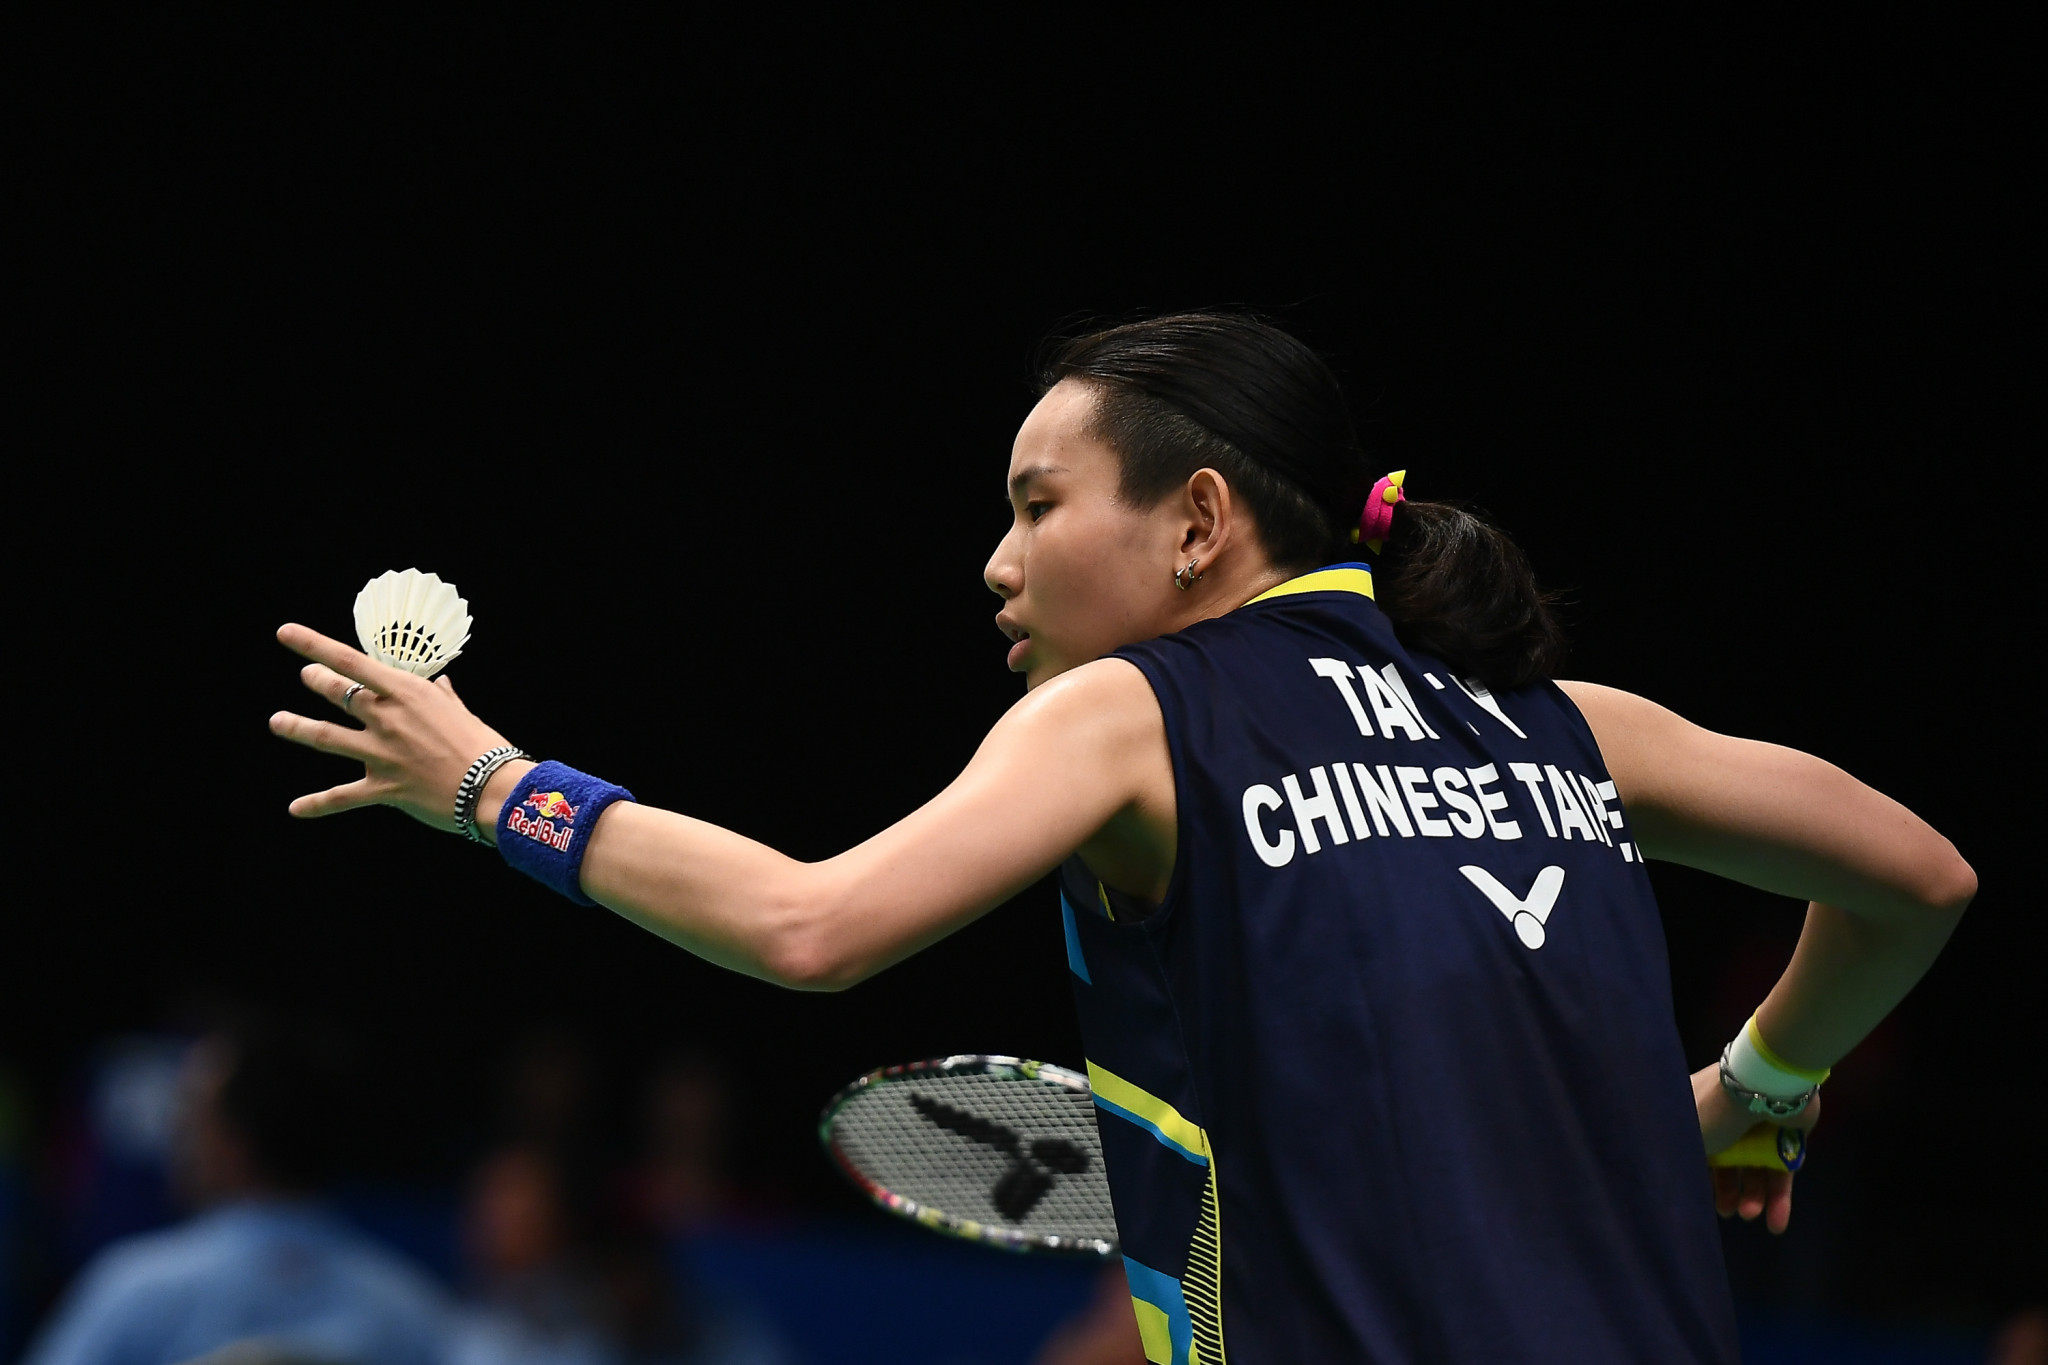 Tai Tzu Ying is the favourite in the women's singles draw ©Getty Images